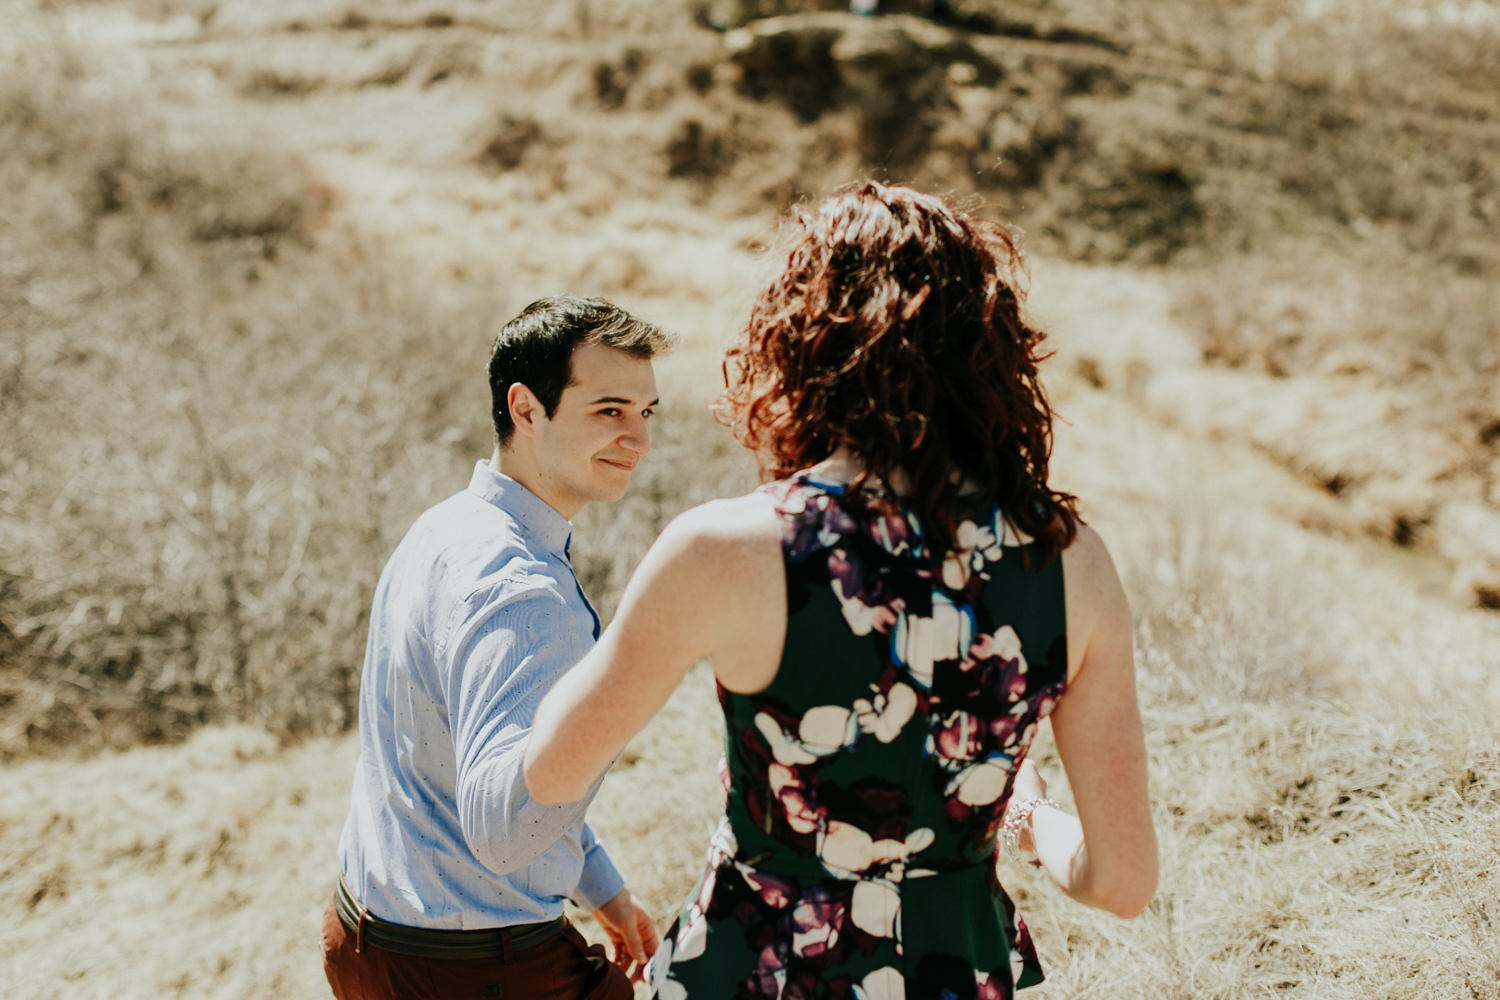 lethbridge-photographer-love-and-be-loved-photography-jodie-adam-coulee-hillside-engagement-photo-image-picture-40.jpg